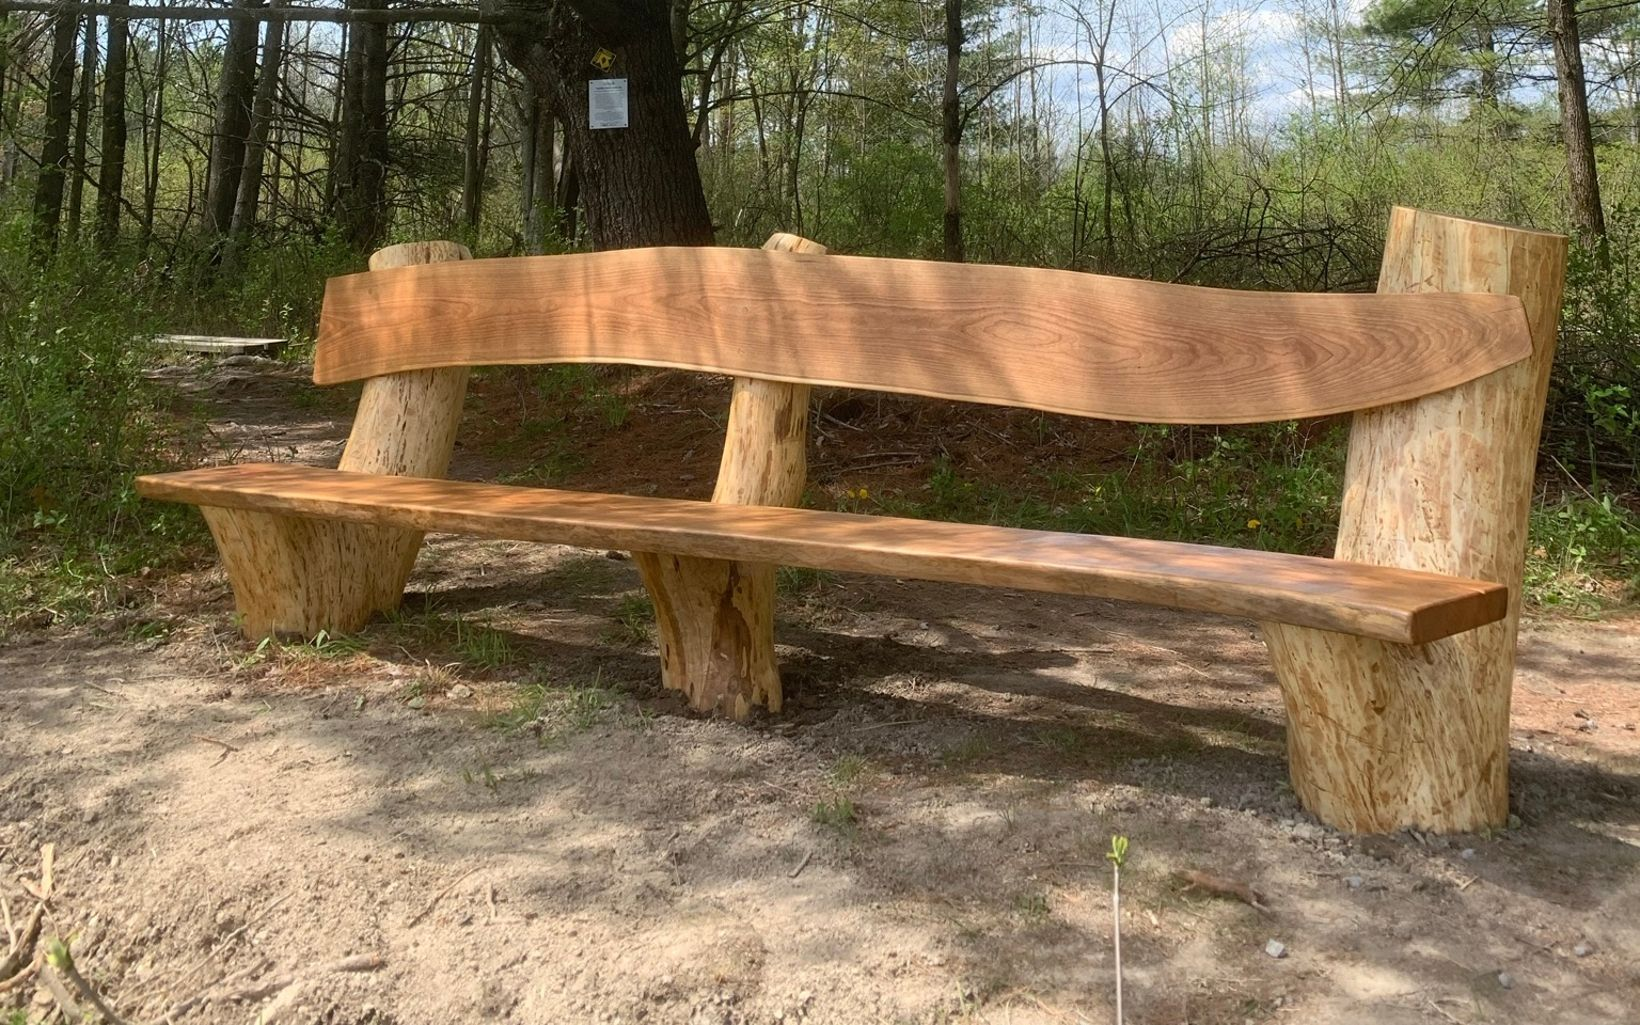 Handmade bench made by woodworking artist- Mario Sacca.